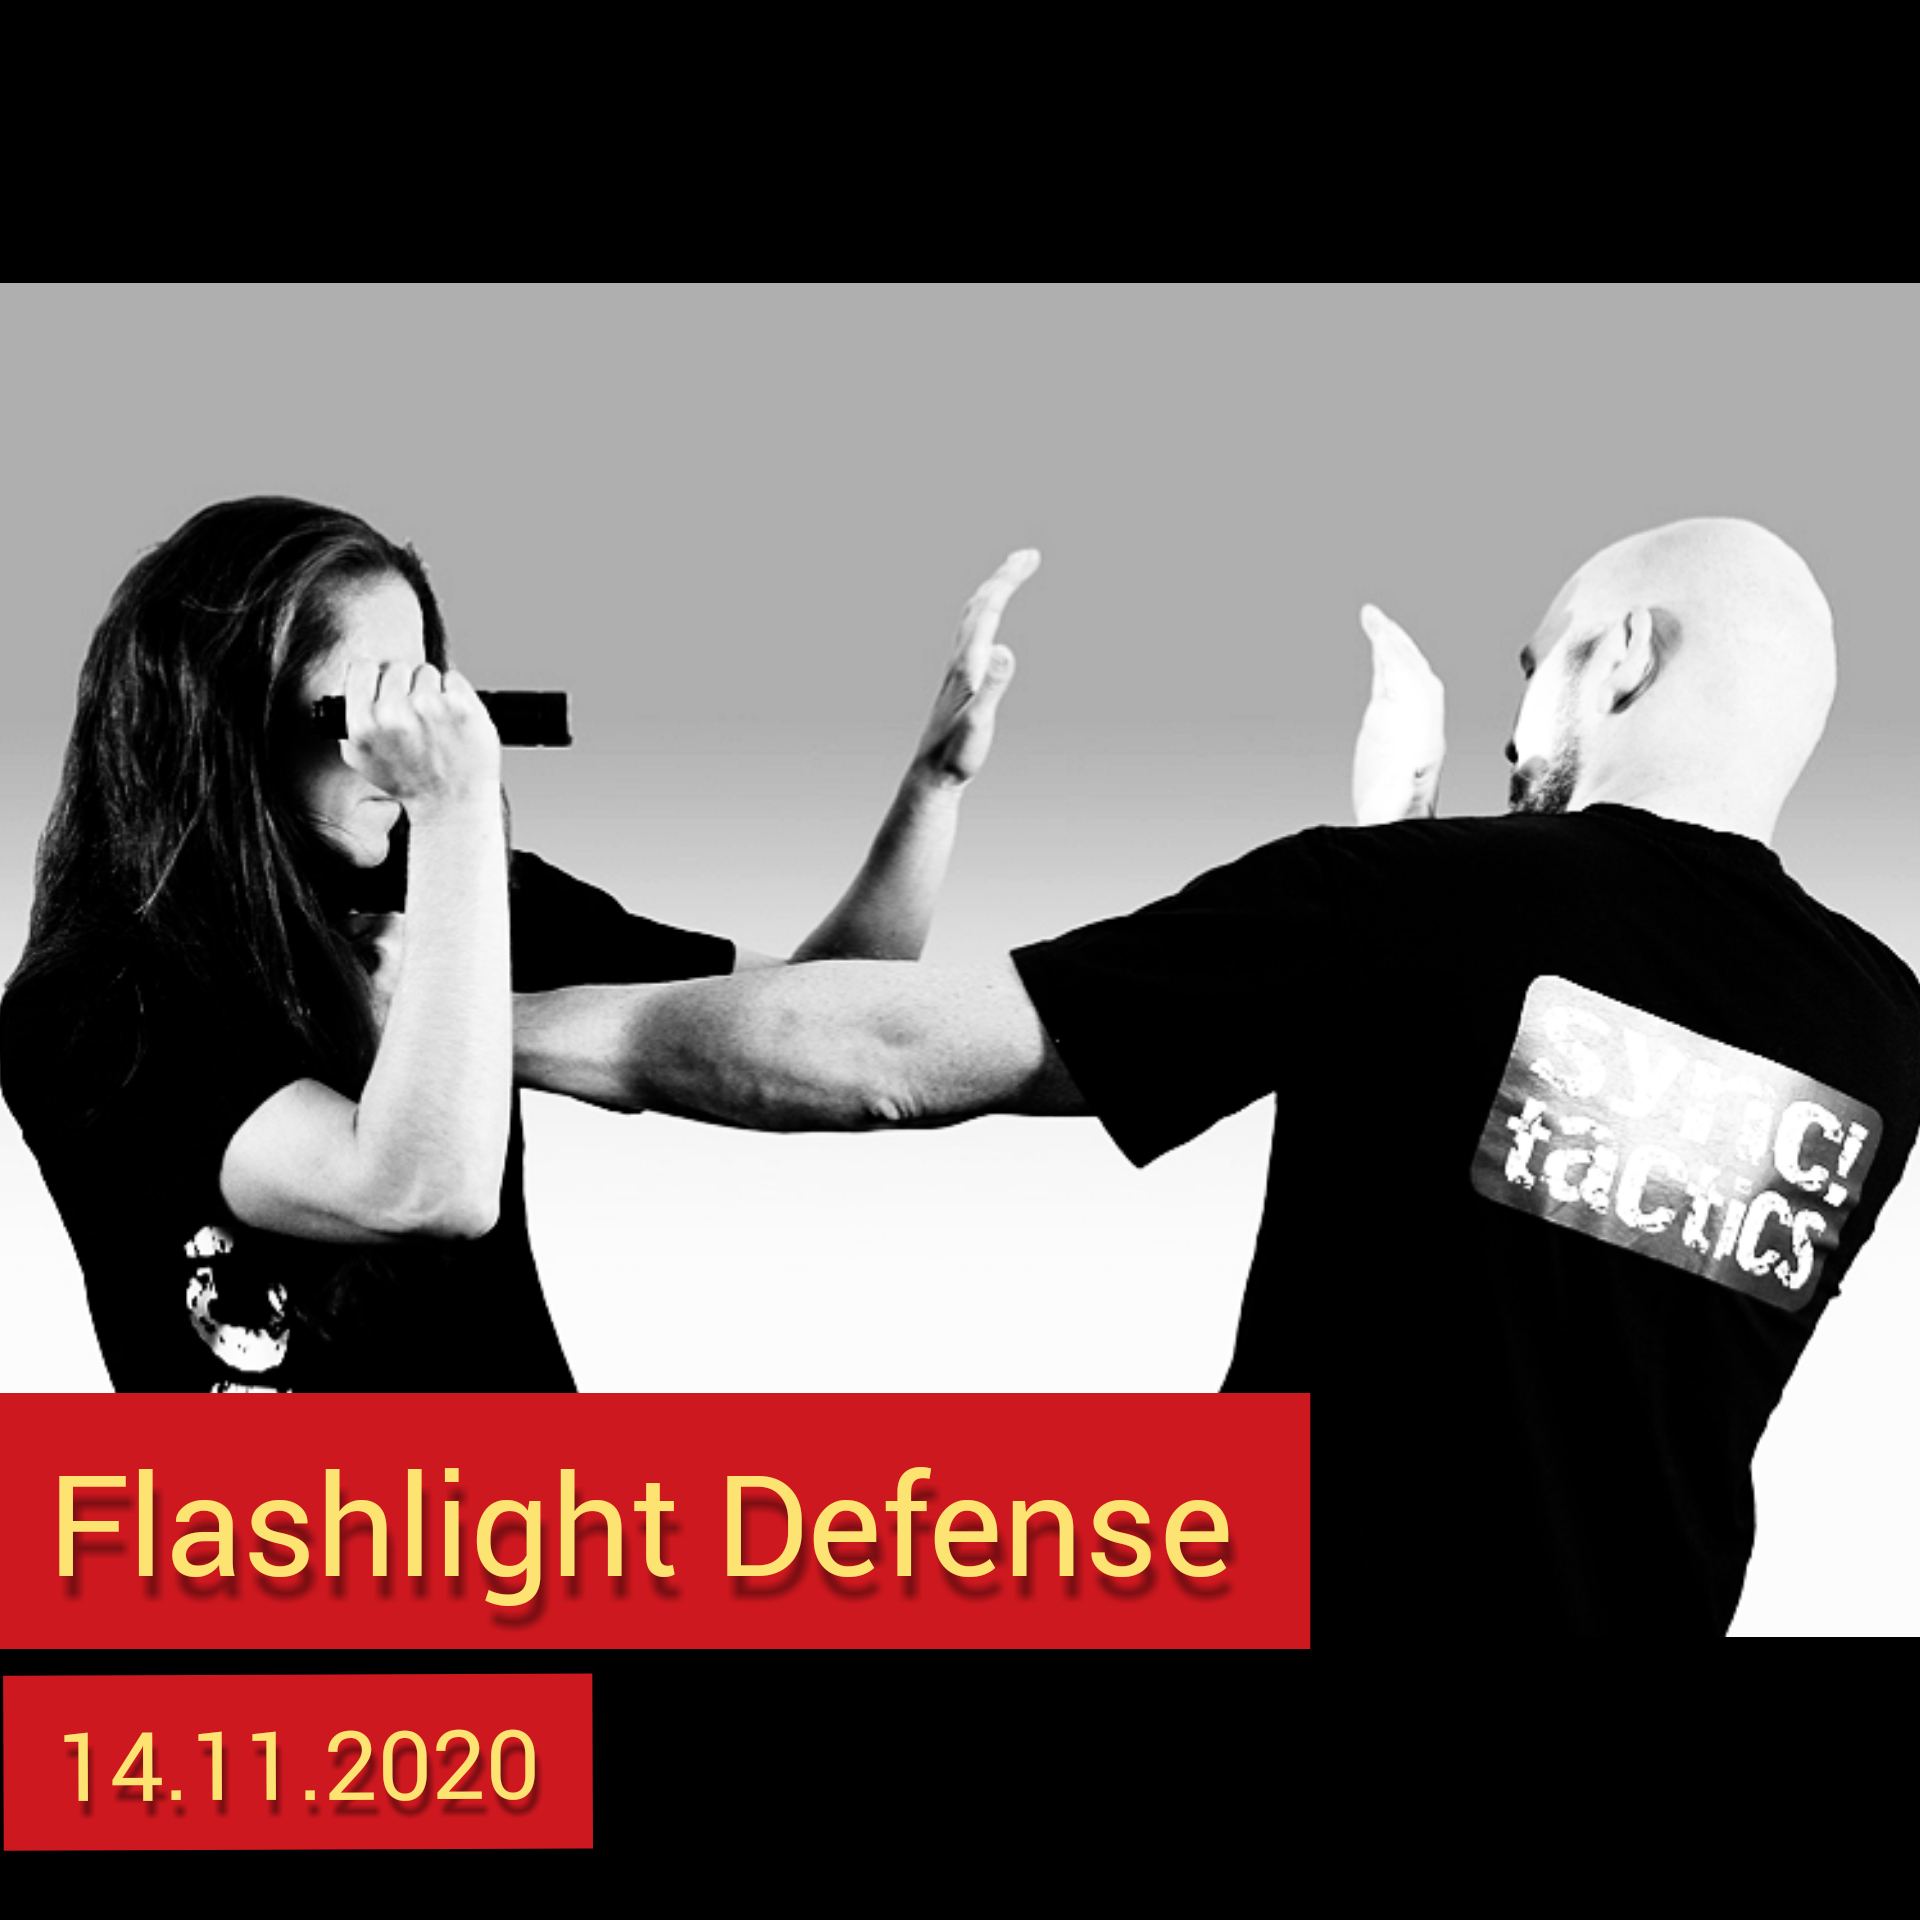 Flashlight Defense – Krav Maga Haan Selbstverteidigung